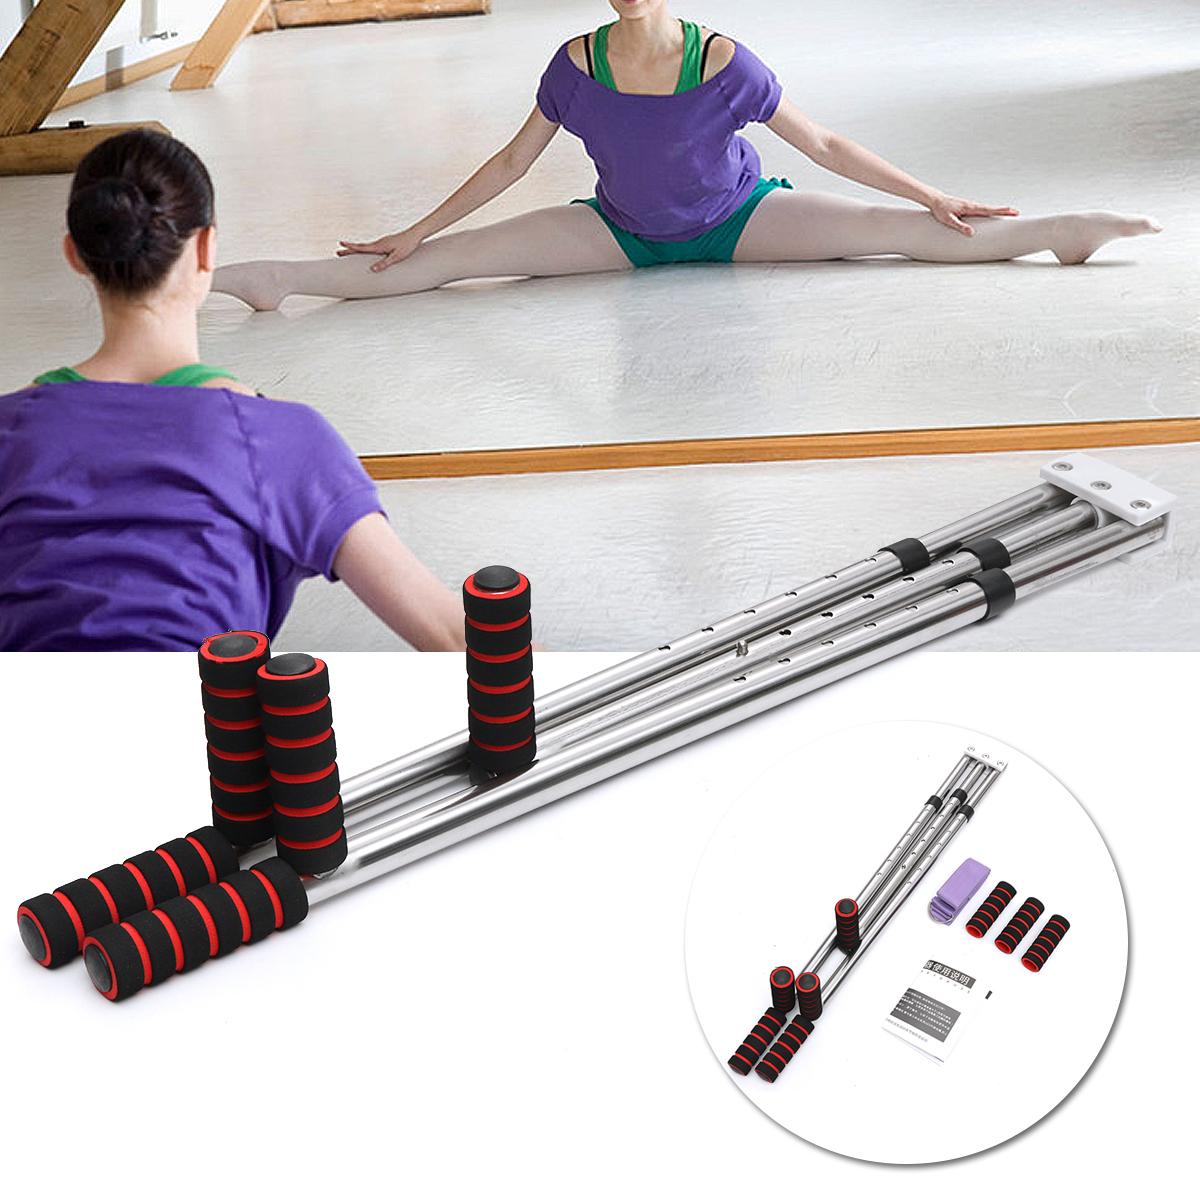 Ballet Leg Extension Machine Flexibility Training Split Legs Ligament Stretcher